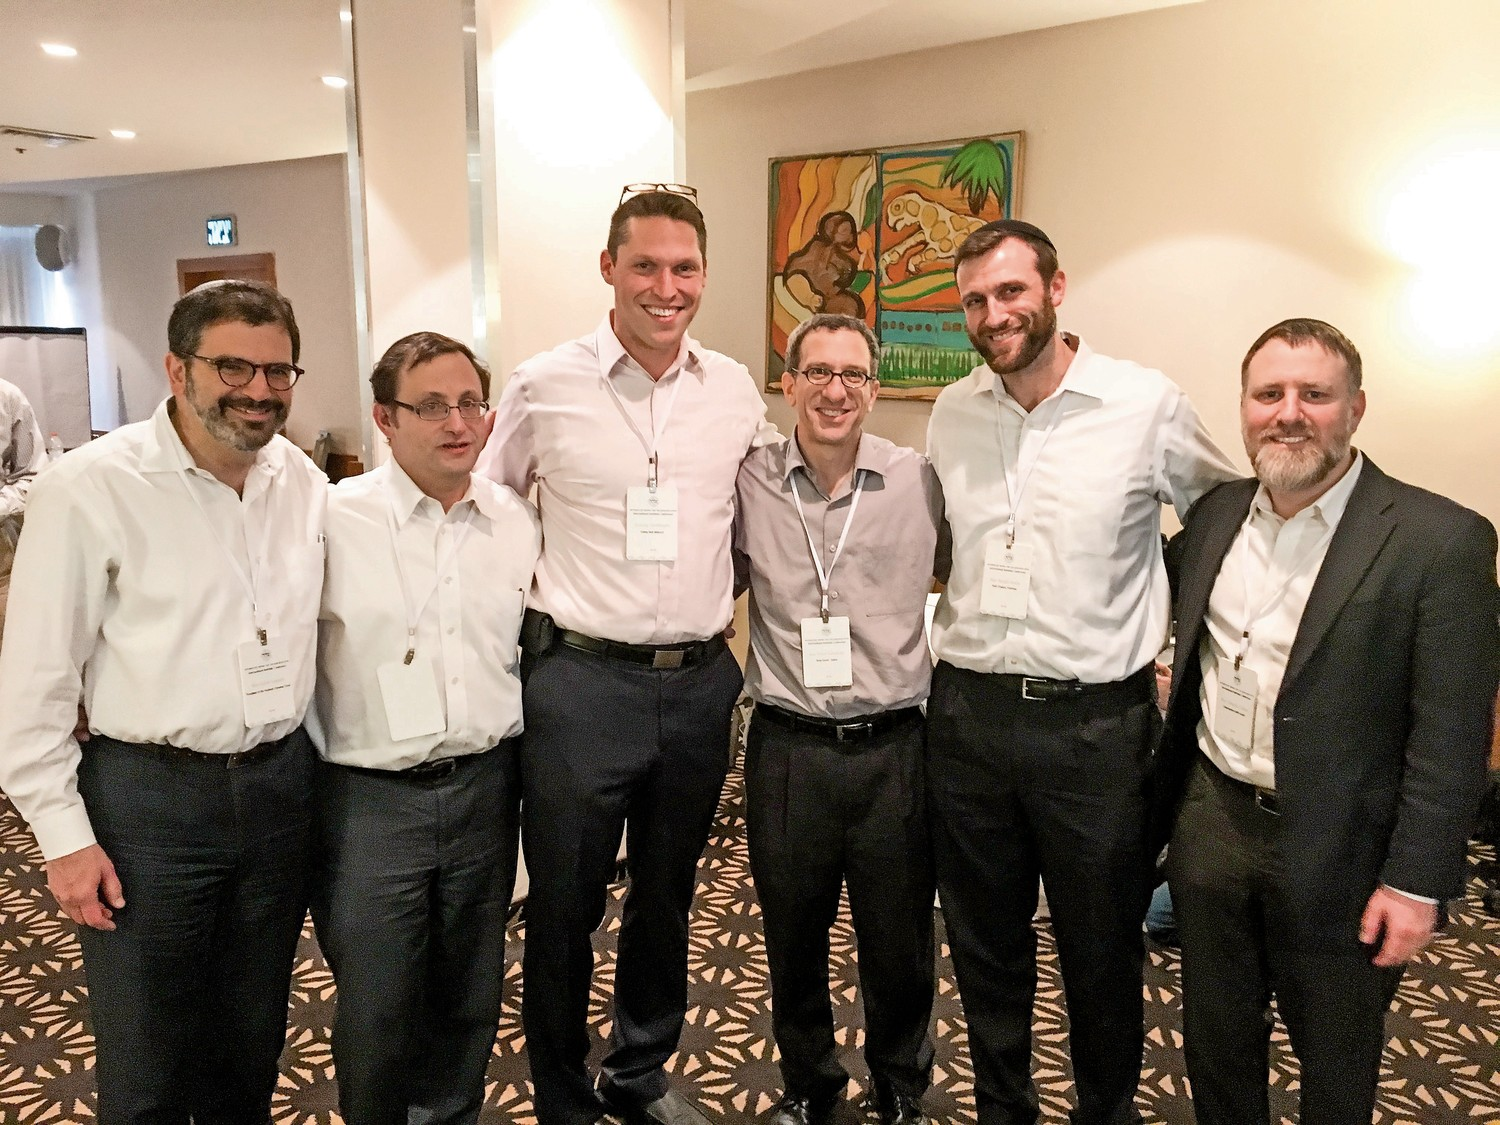 Rabbi Asher Loptain, left, attends a conference with other rabbis in Israel. Rabbi Lopatin is the president of the Yeshivat Chovevei Torah Rabbinical School, and will step down from the position in July.